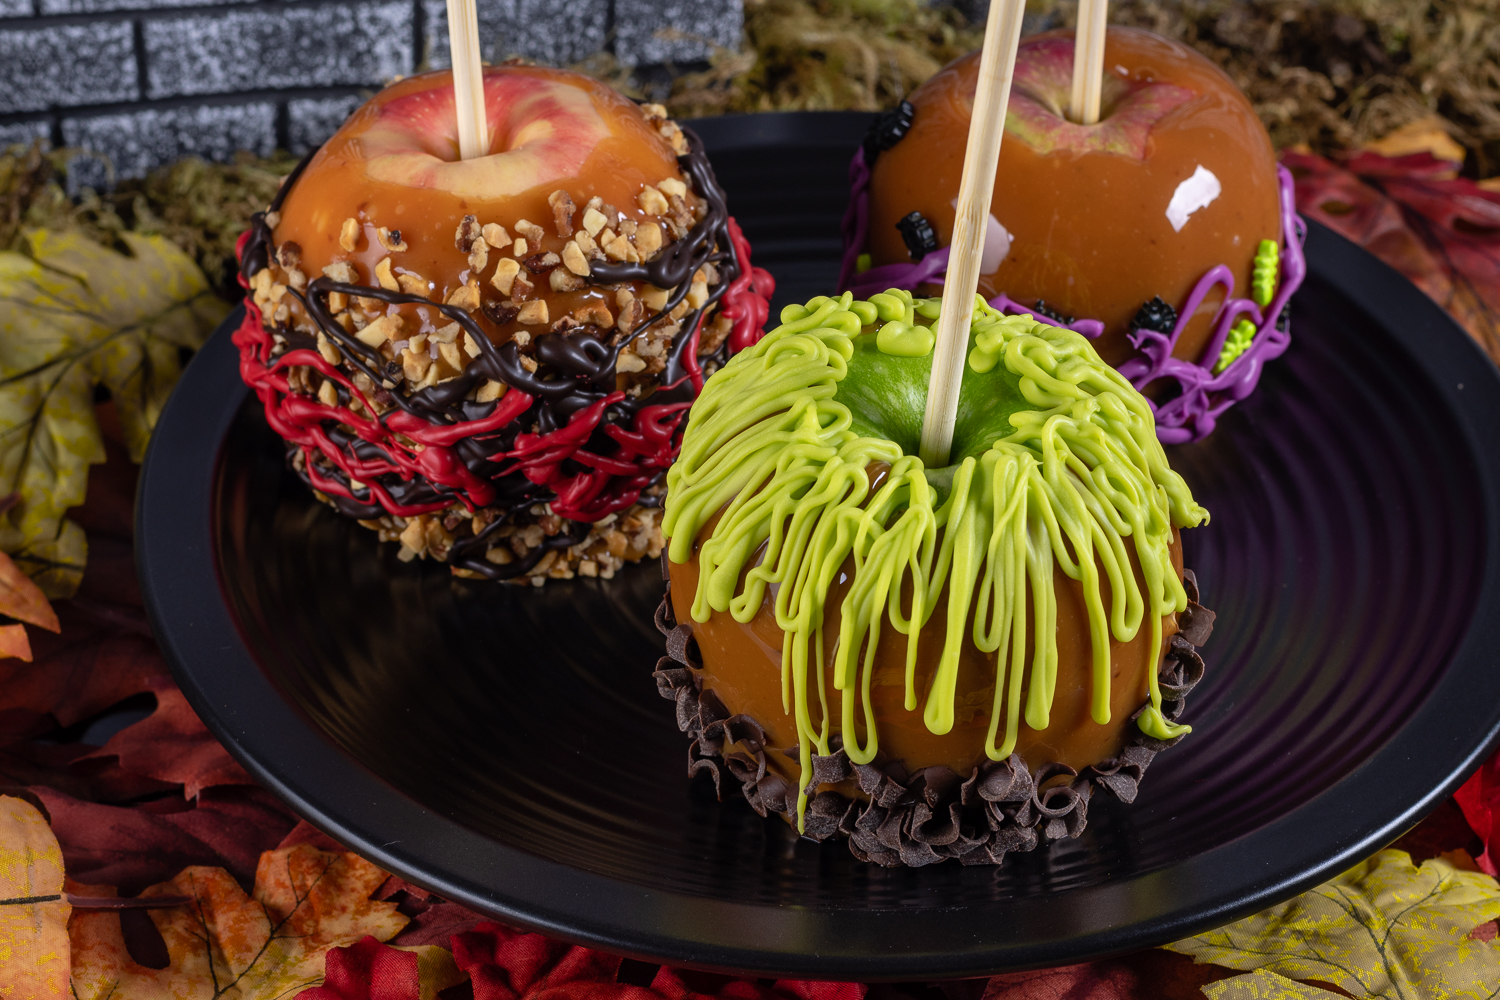 Sanderson Sisters Caramel Apples: A Hocus Pocus Inspired Recipe